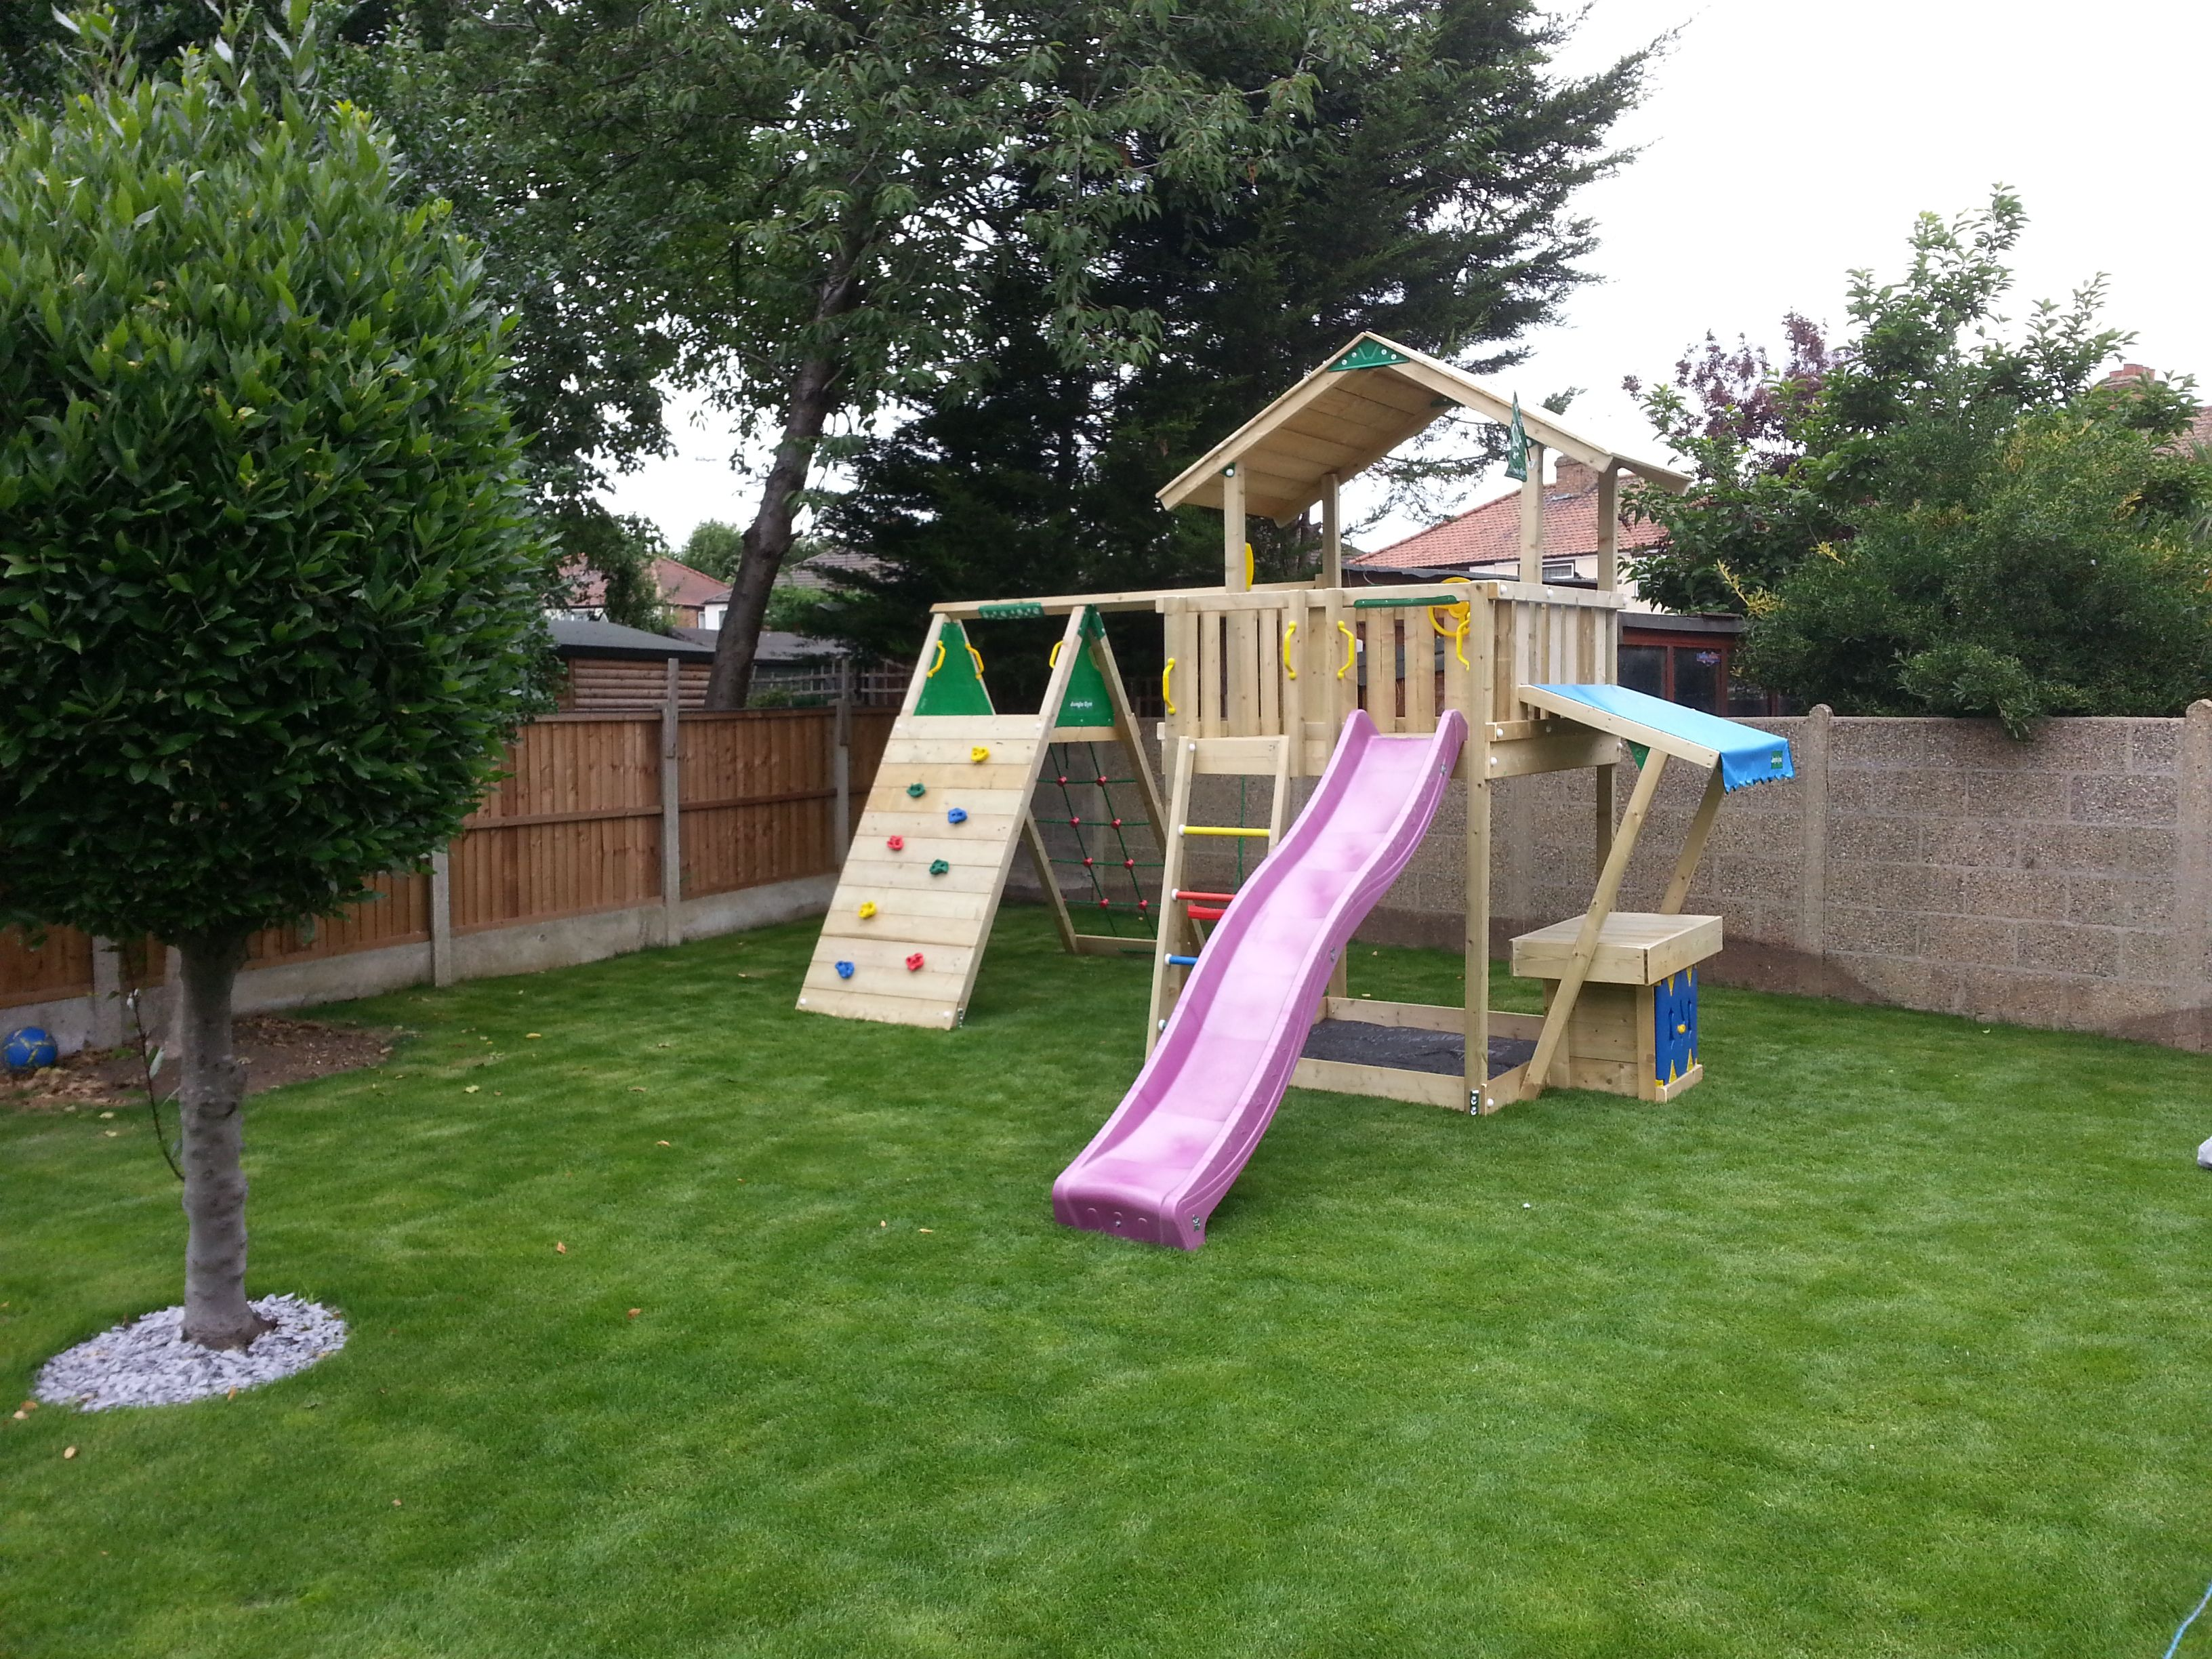 jungle gym chalet with mini market and climb modules installations by active garden. Black Bedroom Furniture Sets. Home Design Ideas